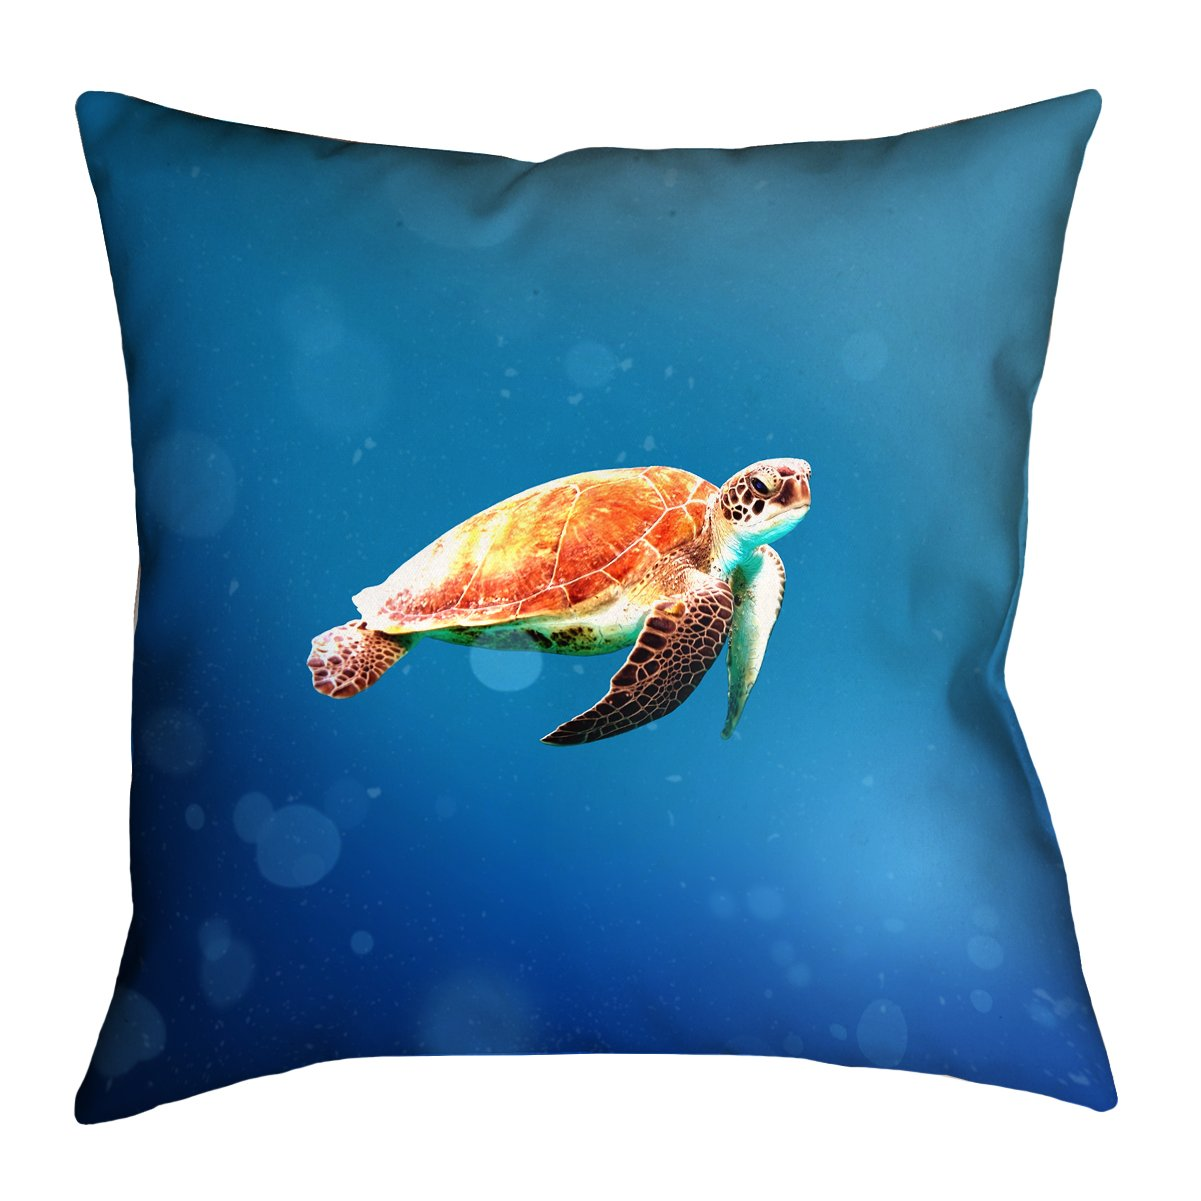 ArtVerse Katelyn Smith 40 x 40 Floor Double Sided Print with Concealed Zipper /& Insert Sea Turtle Pillow